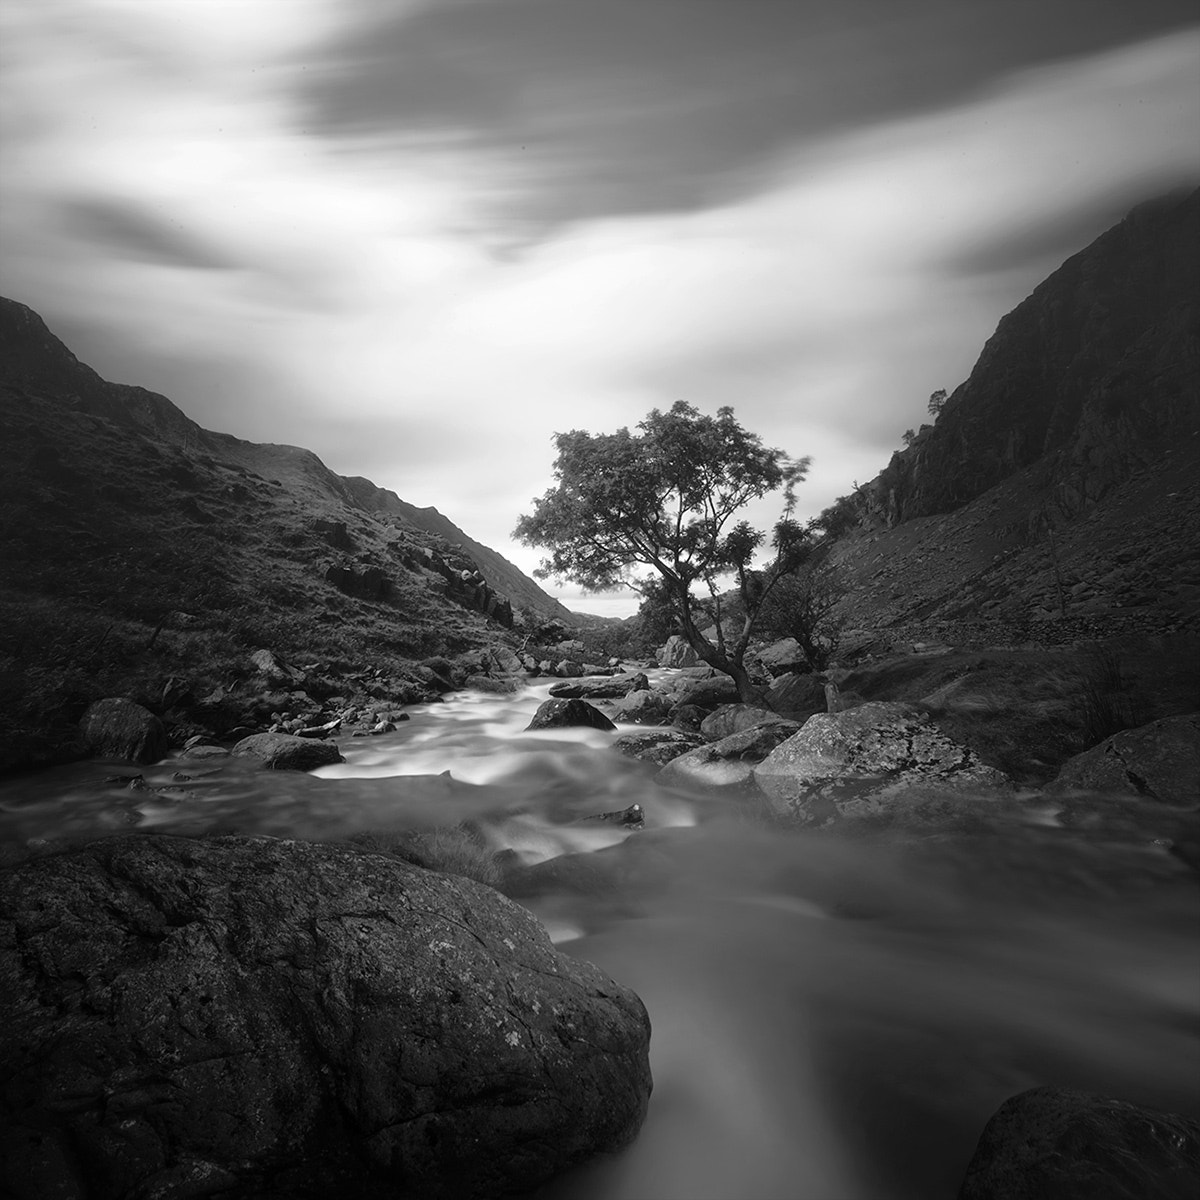 Photograph Llanberis Pass, Snowdonia by Andy Lee on 500px